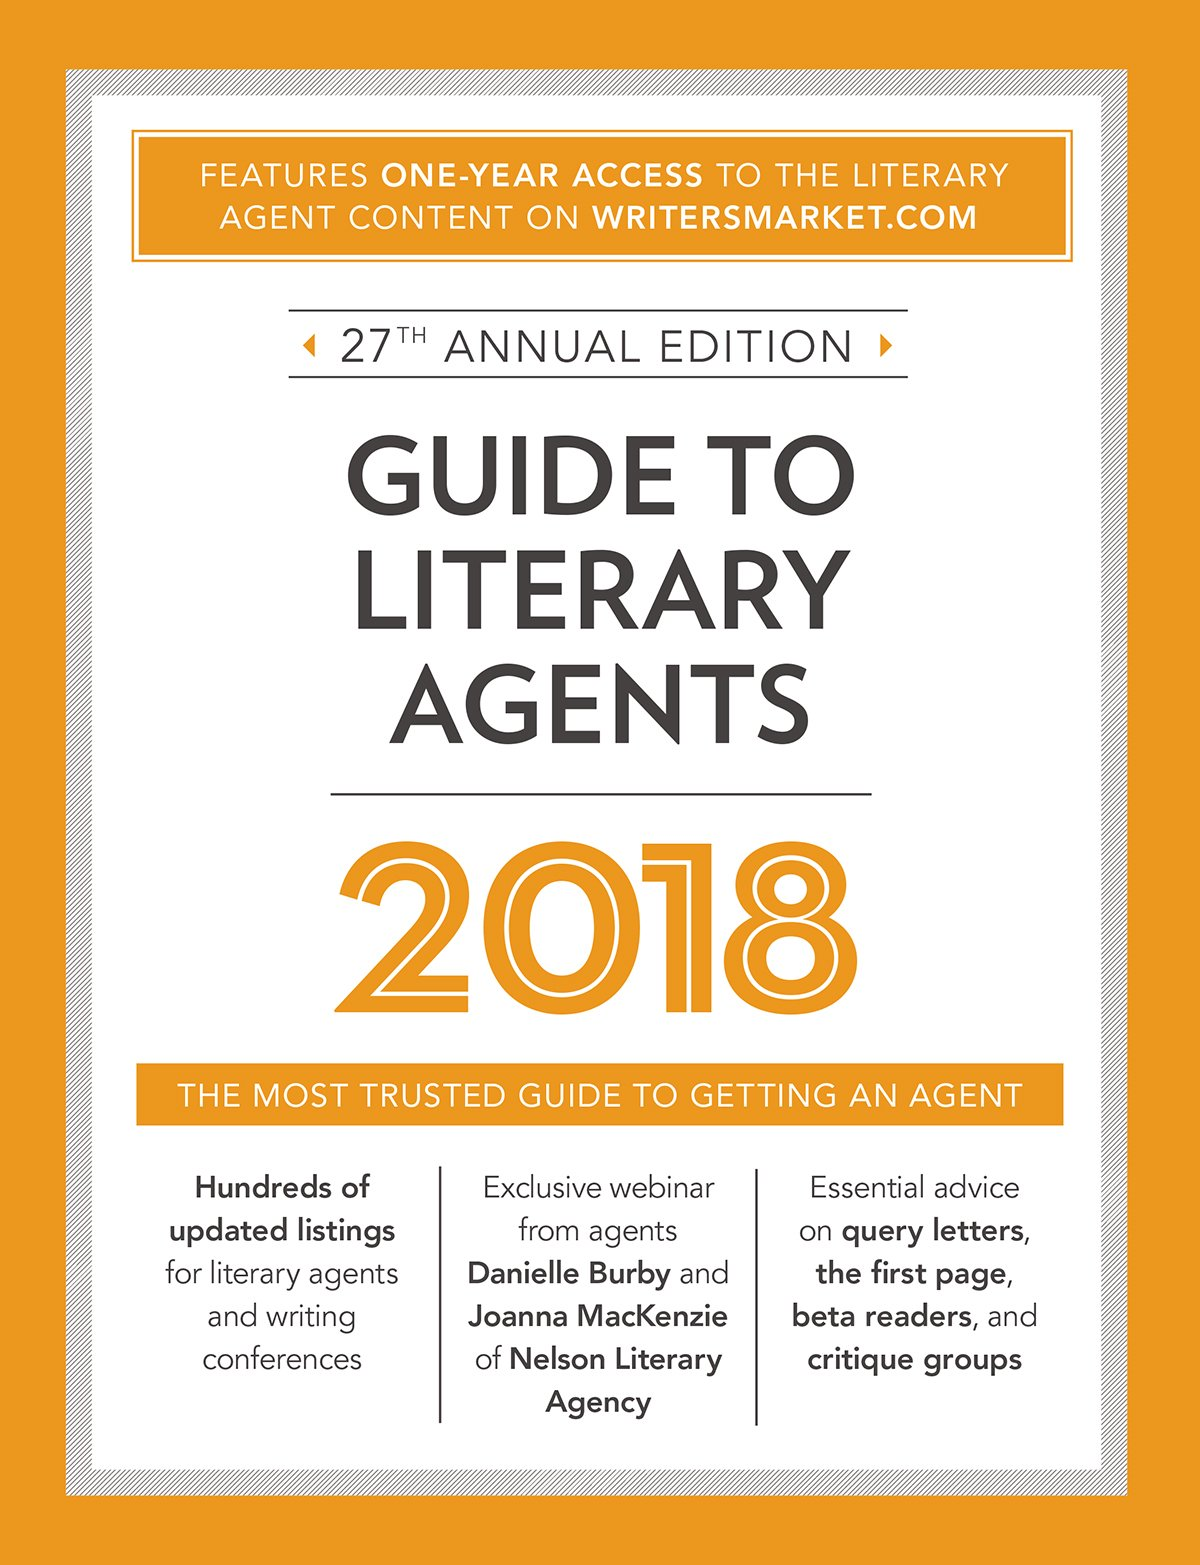 Guide to Literary Agents 2018: The Most Trusted Guide to Getting Published (Market) by Writer's Digest